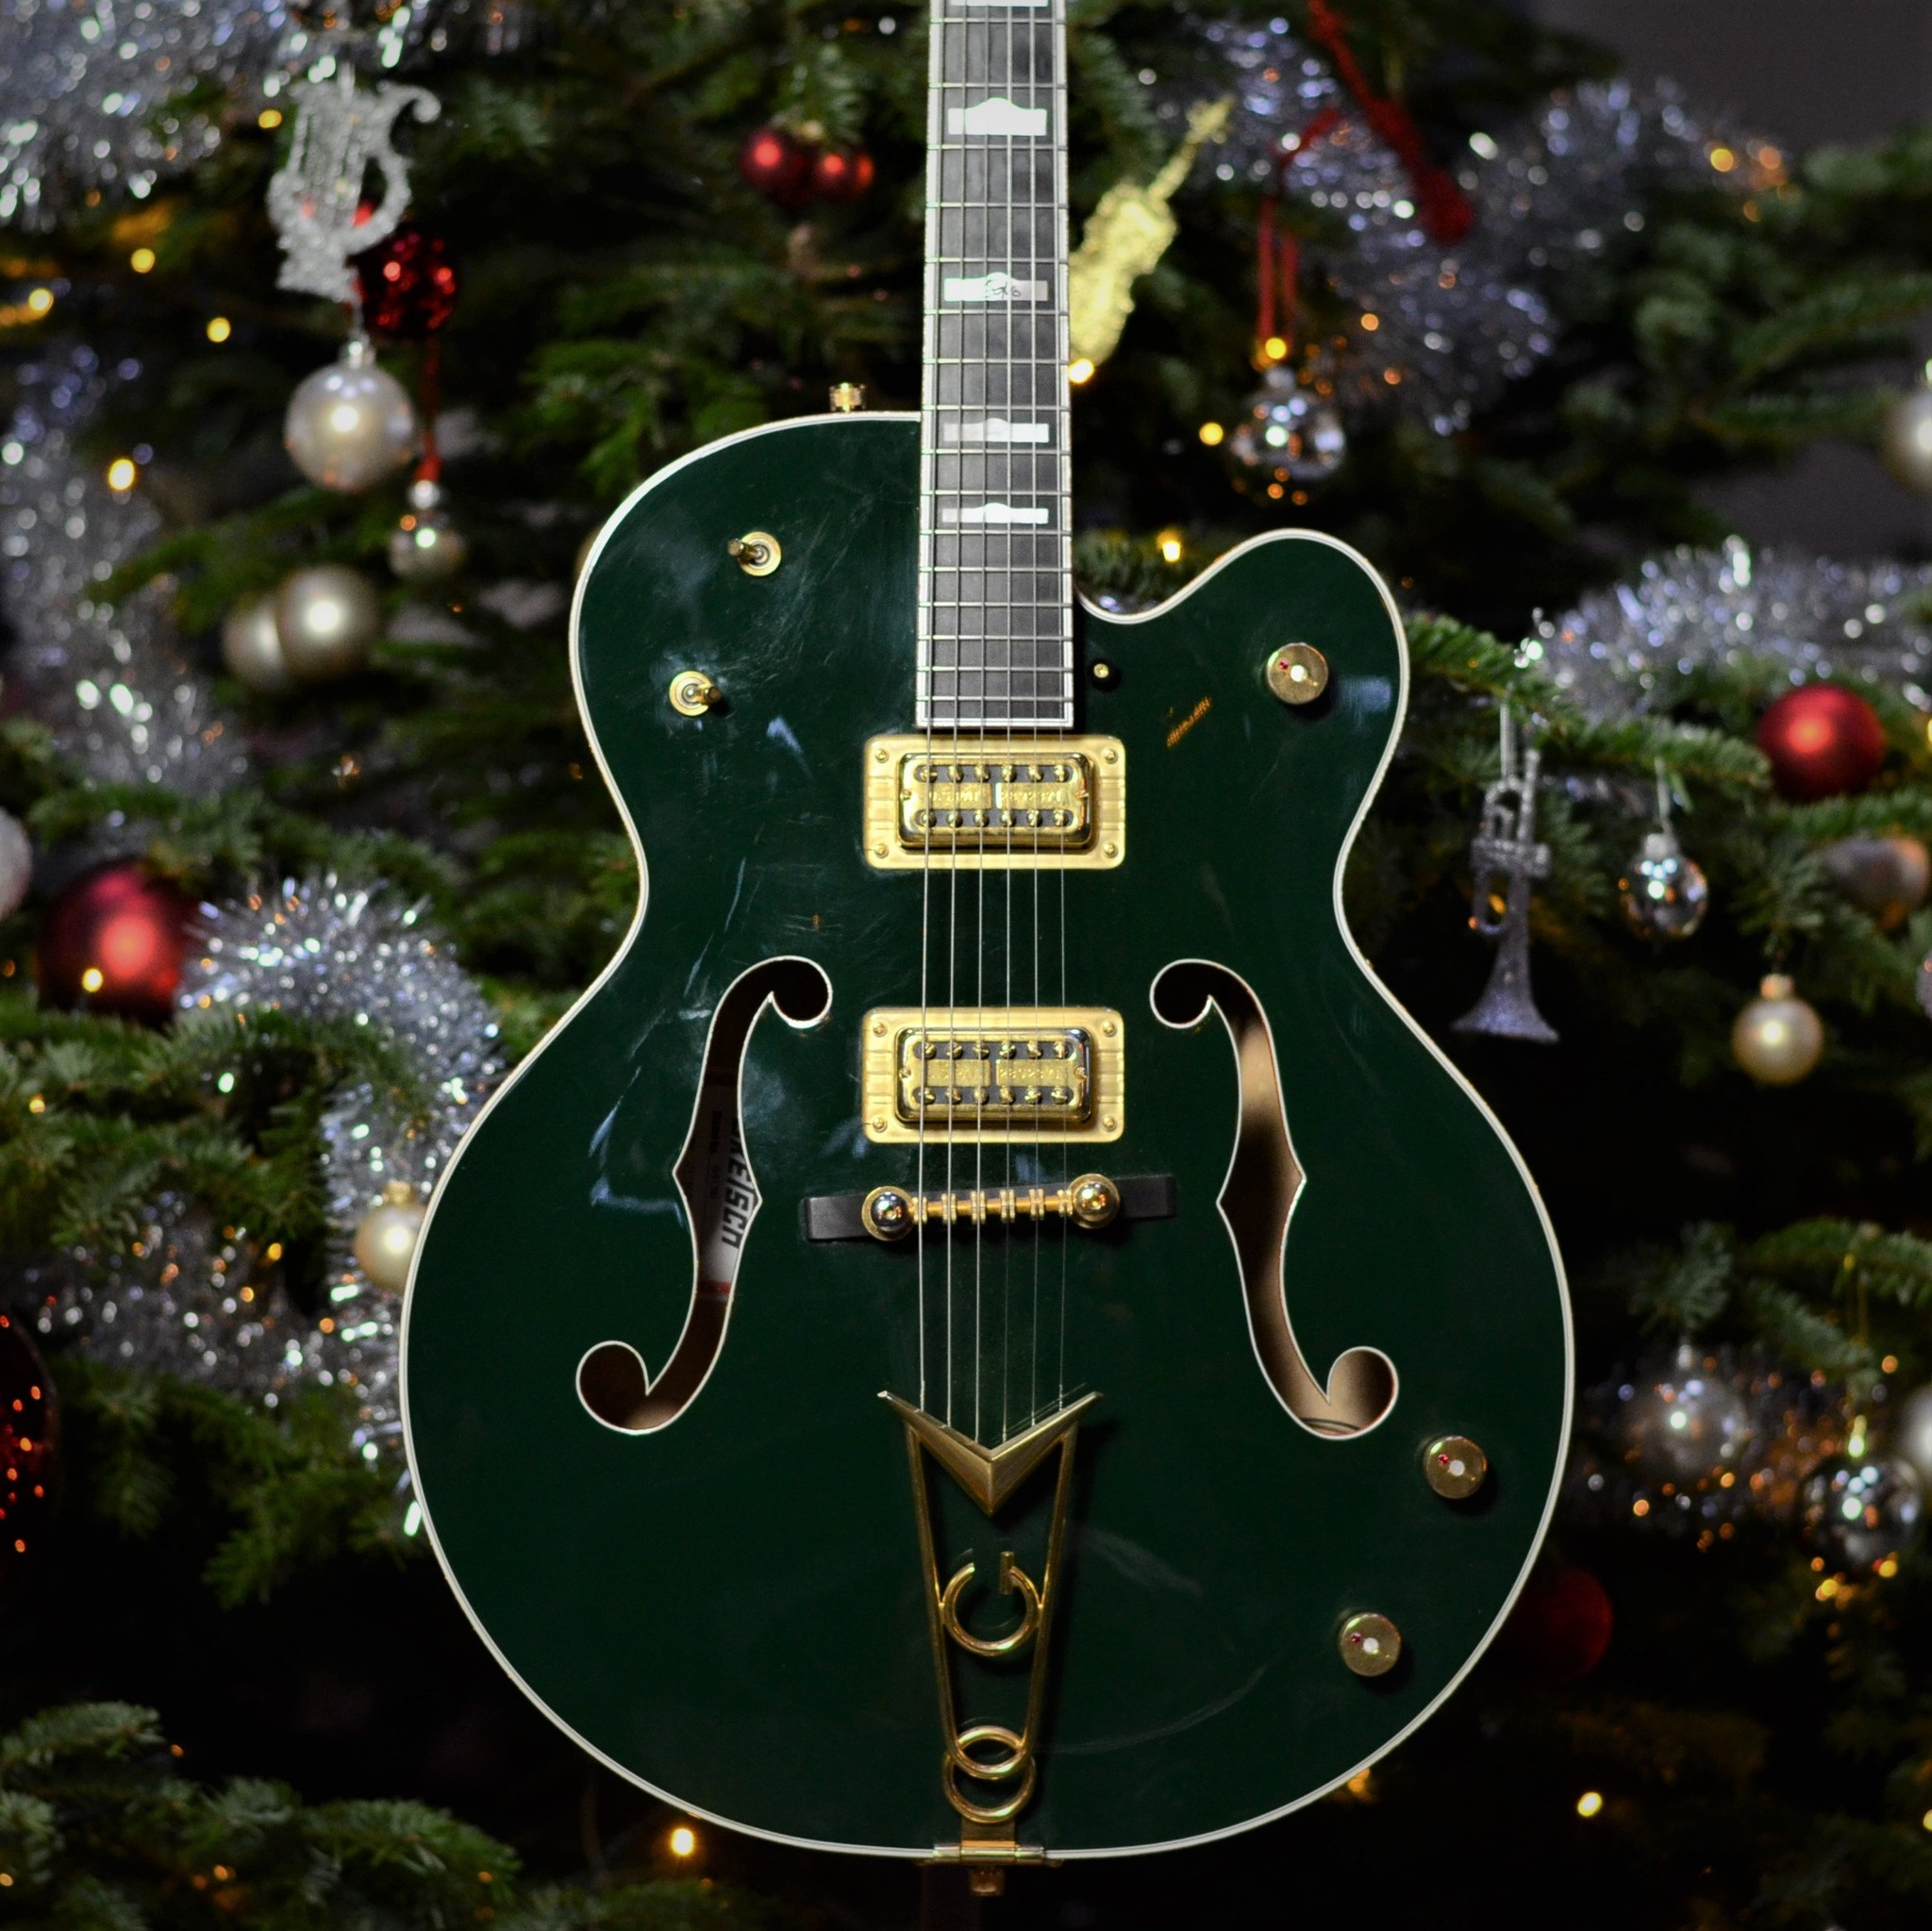 Fellows Favorite Guitar Gifts: The nicest guitar gifts up to 100 euro's!